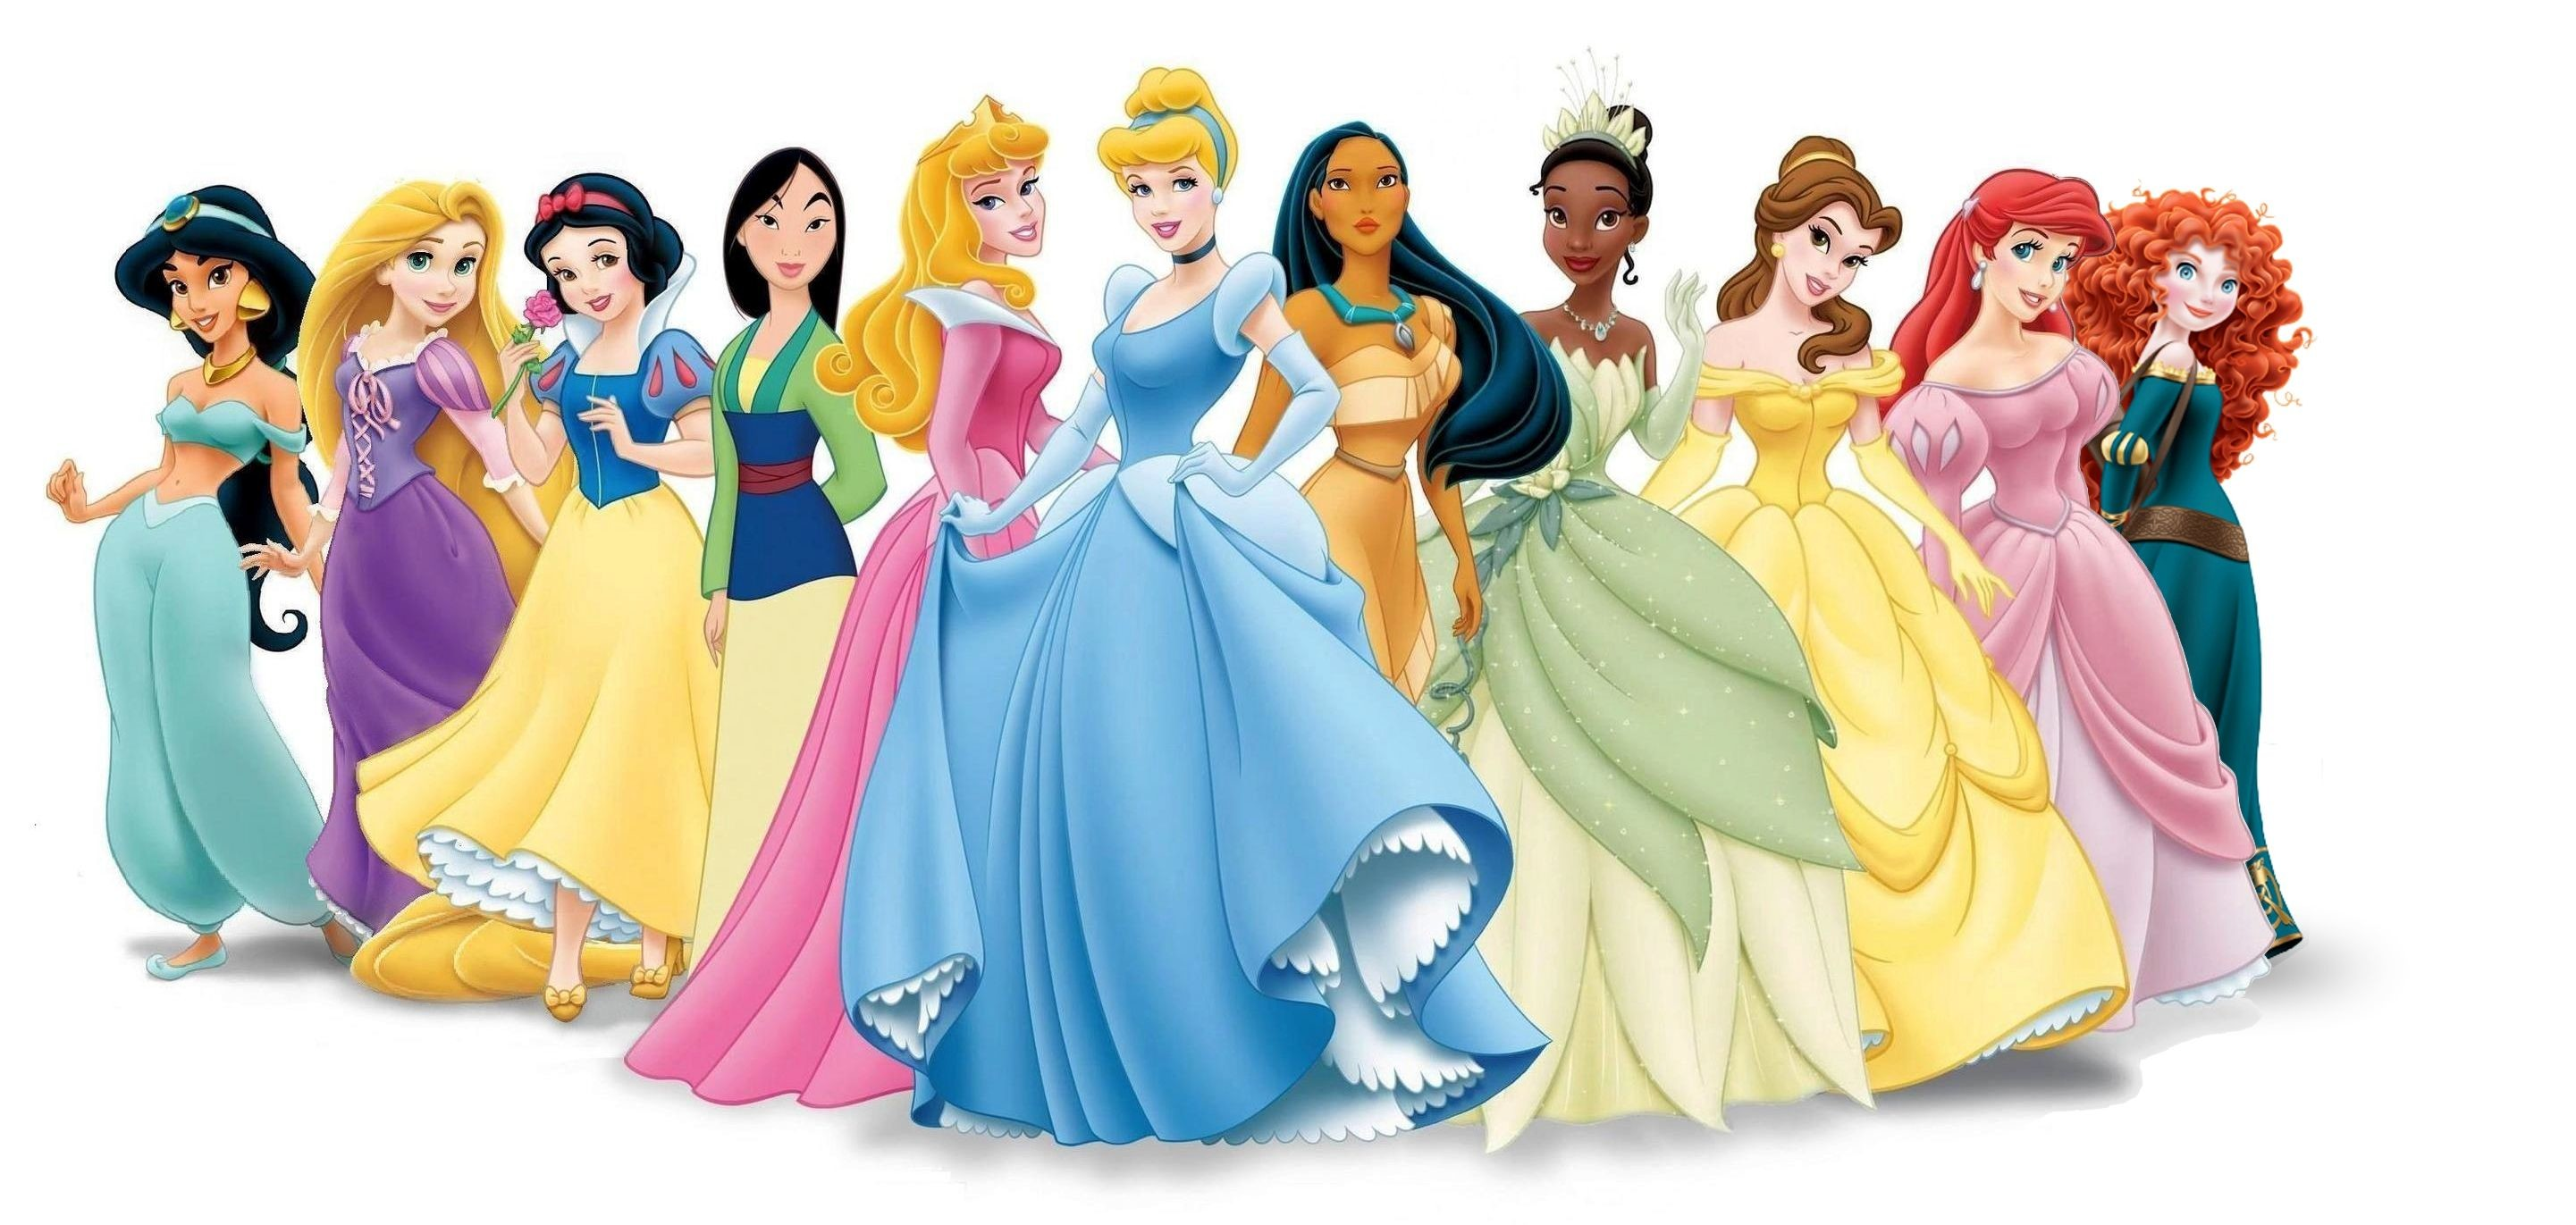 Disney Princesses Wallpapers Hd Wallpaper Collections